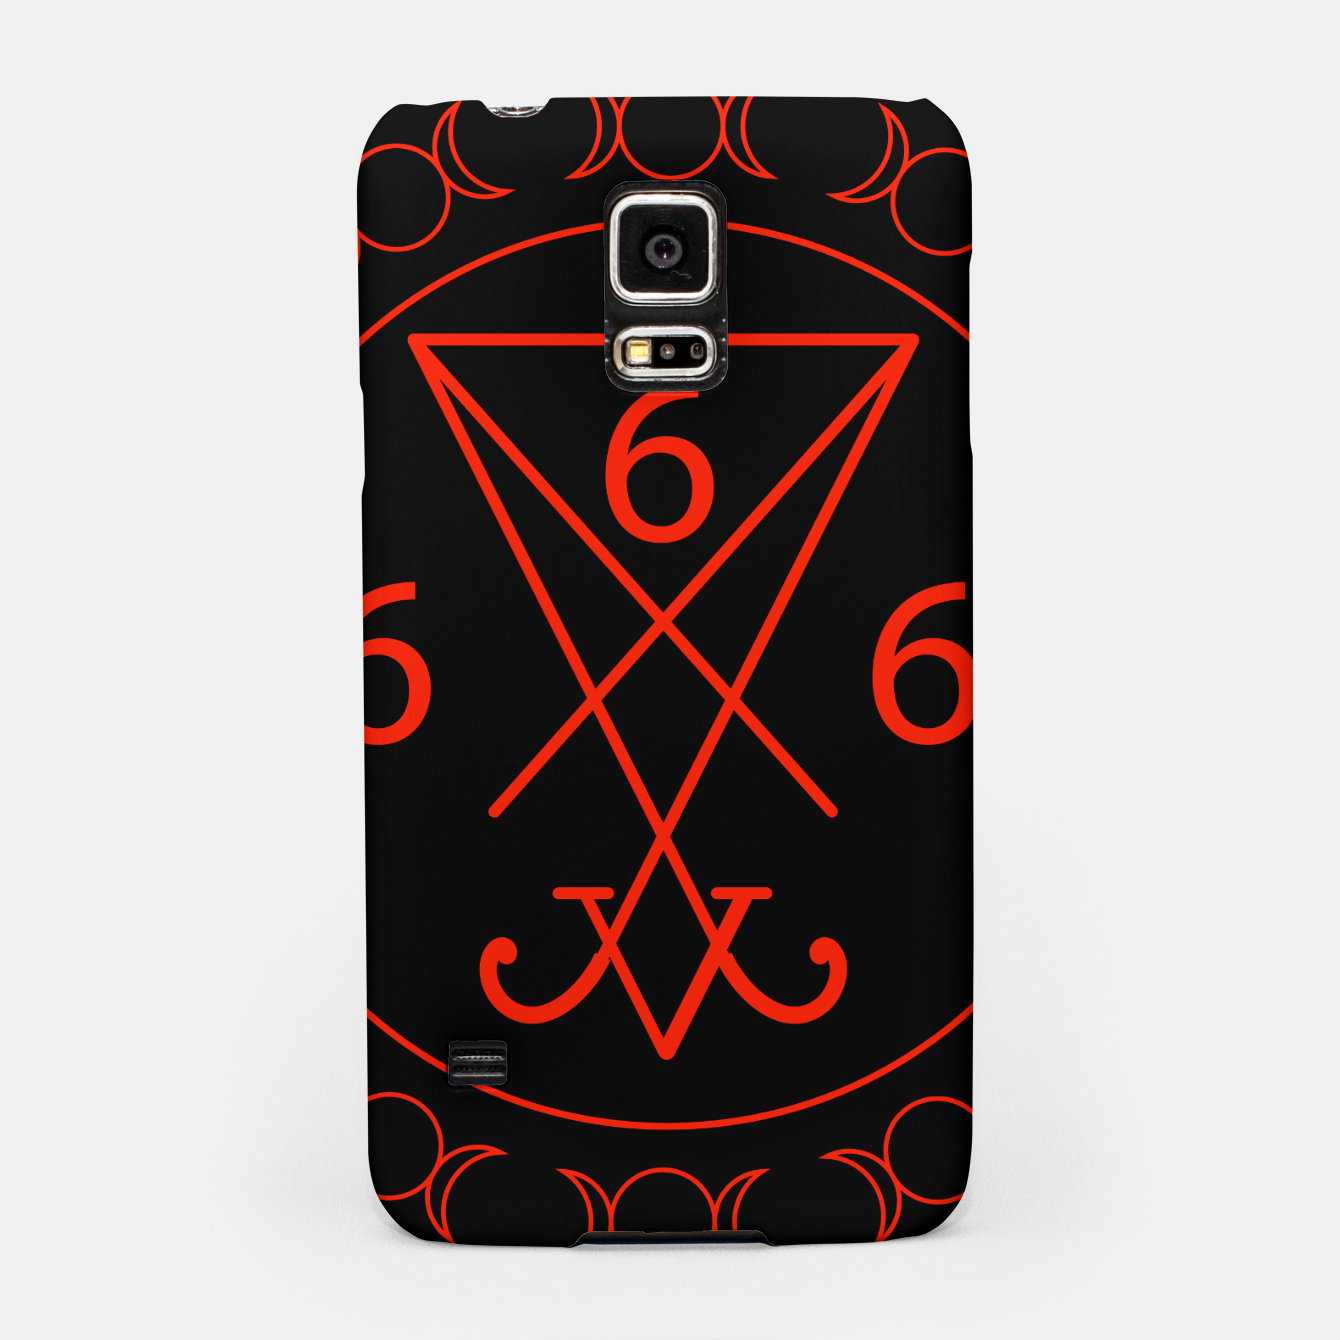 666 The Number Of The Beast With The Sigil Of Lucifer Symbol